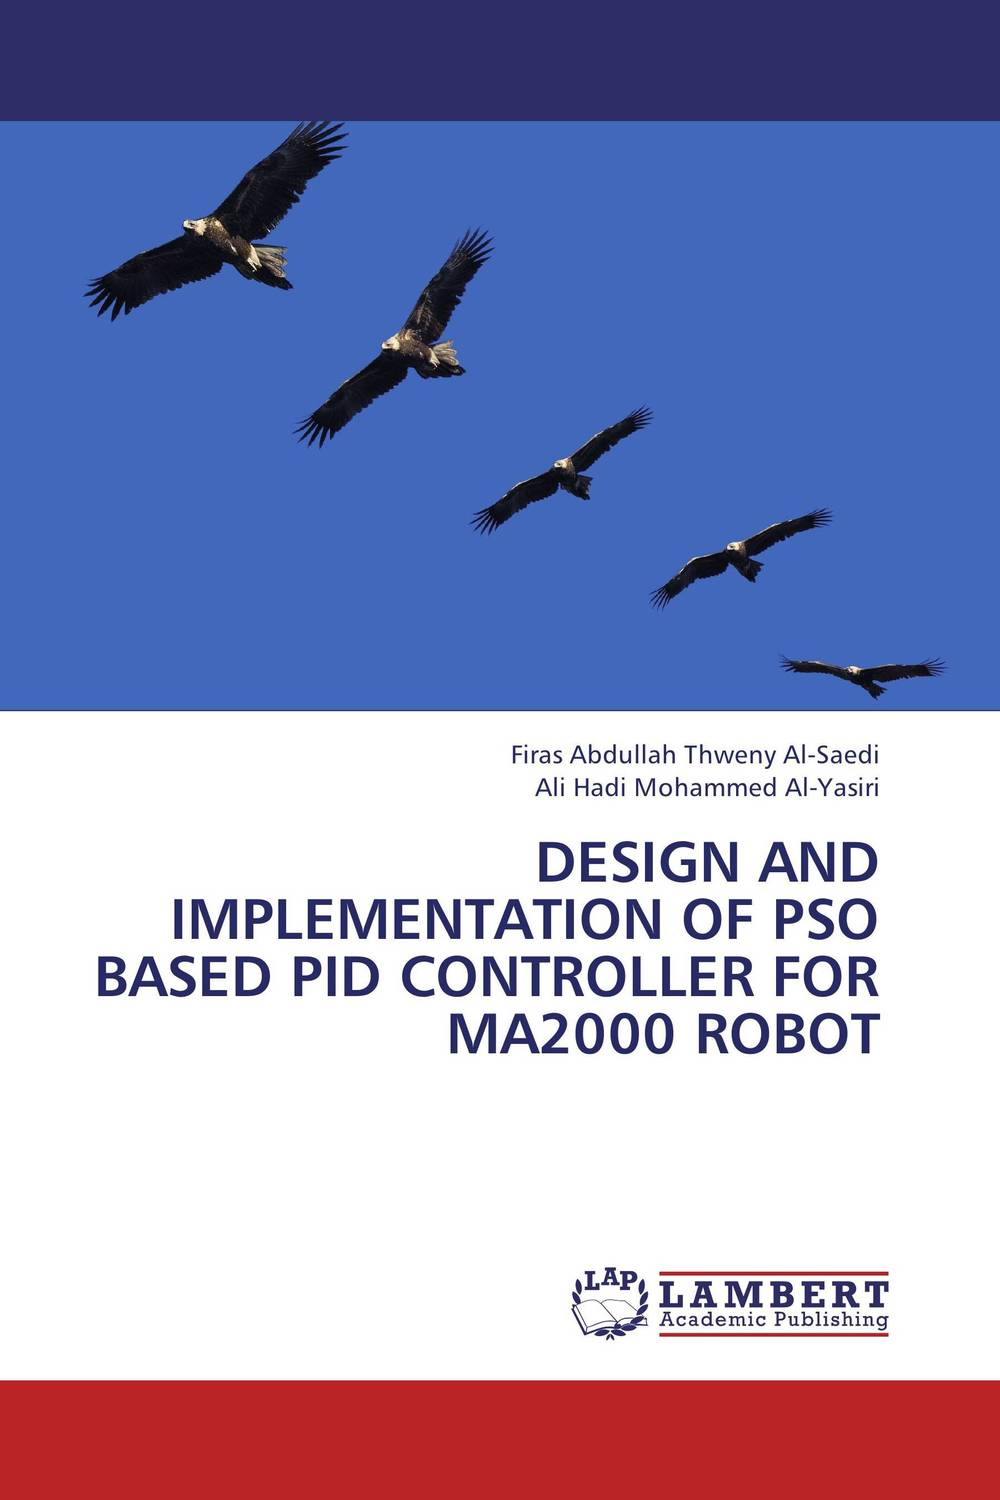 DESIGN AND IMPLEMENTATION OF PSO BASED PID CONTROLLER FOR MA2000 ROBOT auto tuning of pid and fuzzy controllers using genetic algorithm